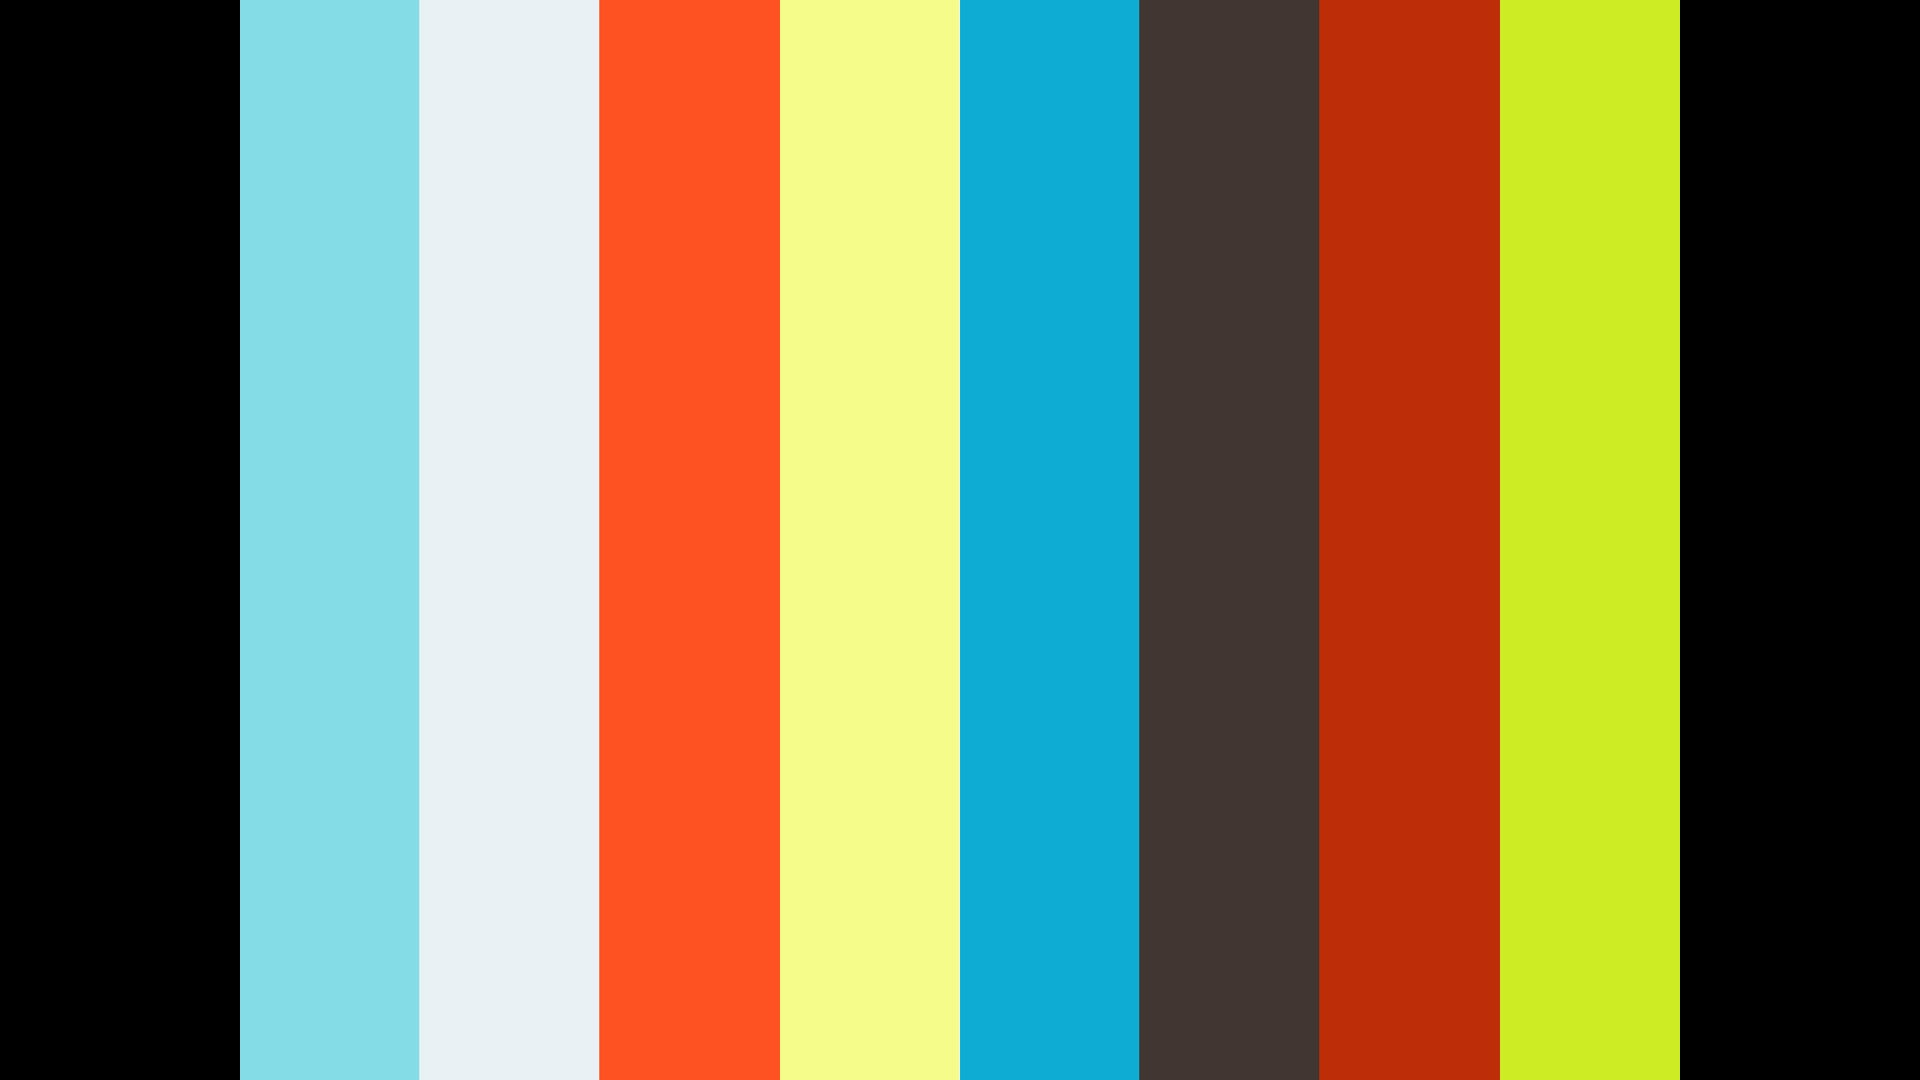 Zhuhai, a video by Mitchell Snider